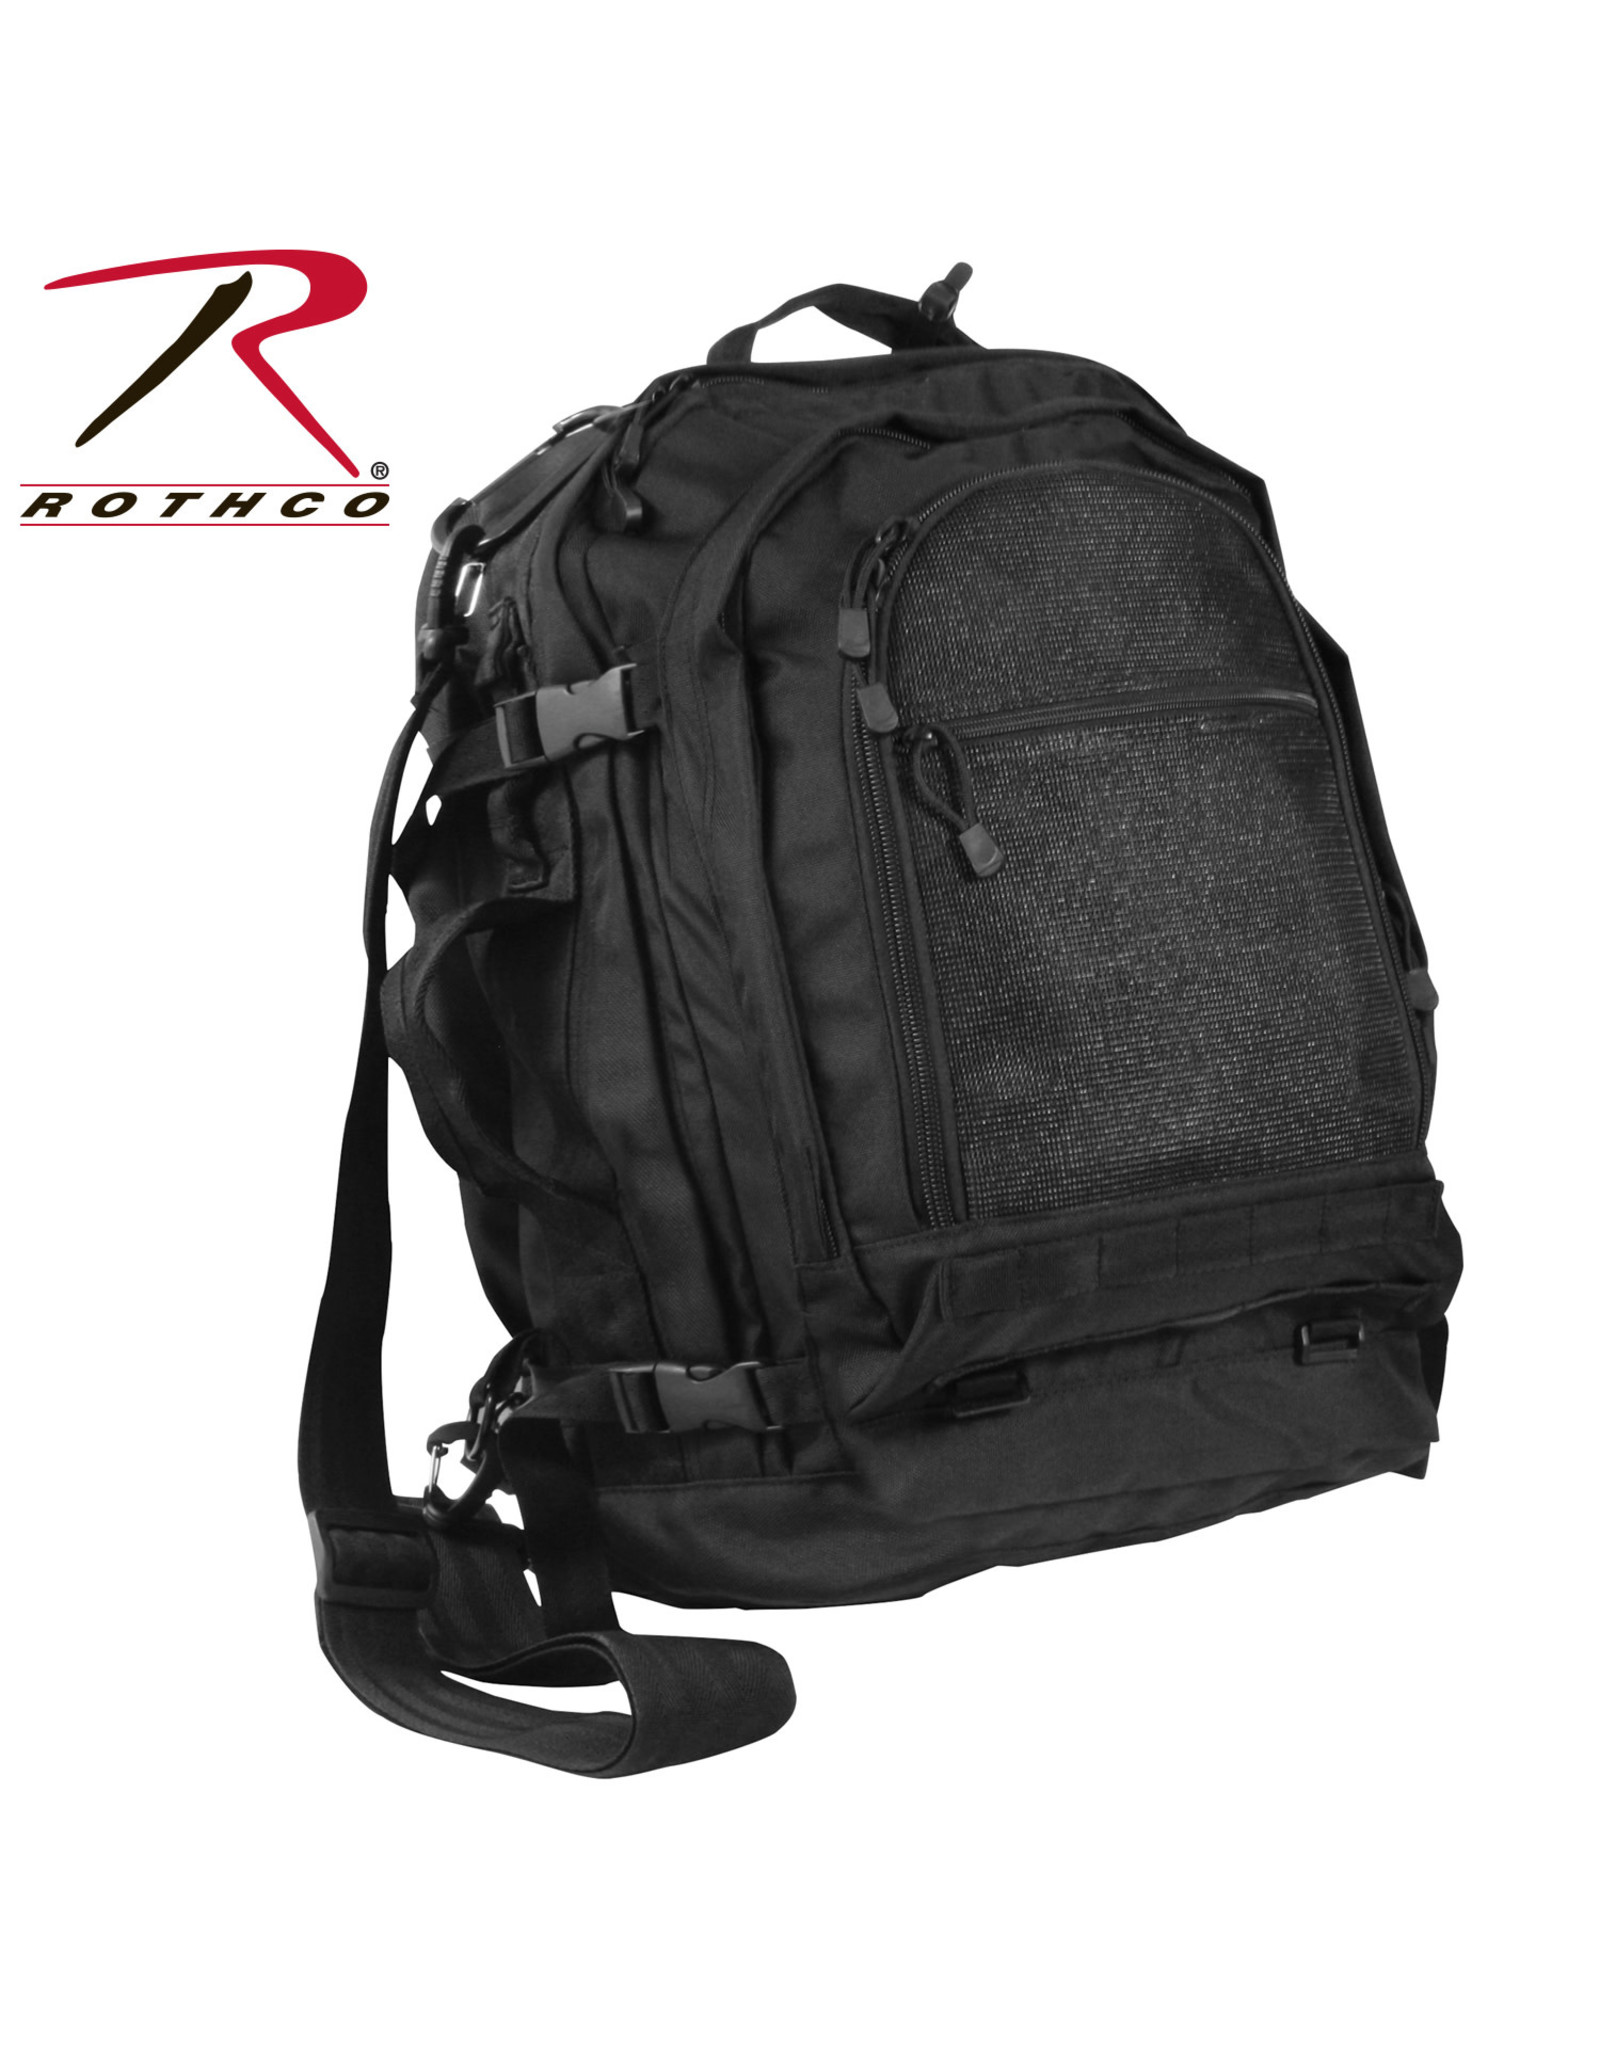 Tactical Backpack - Travel